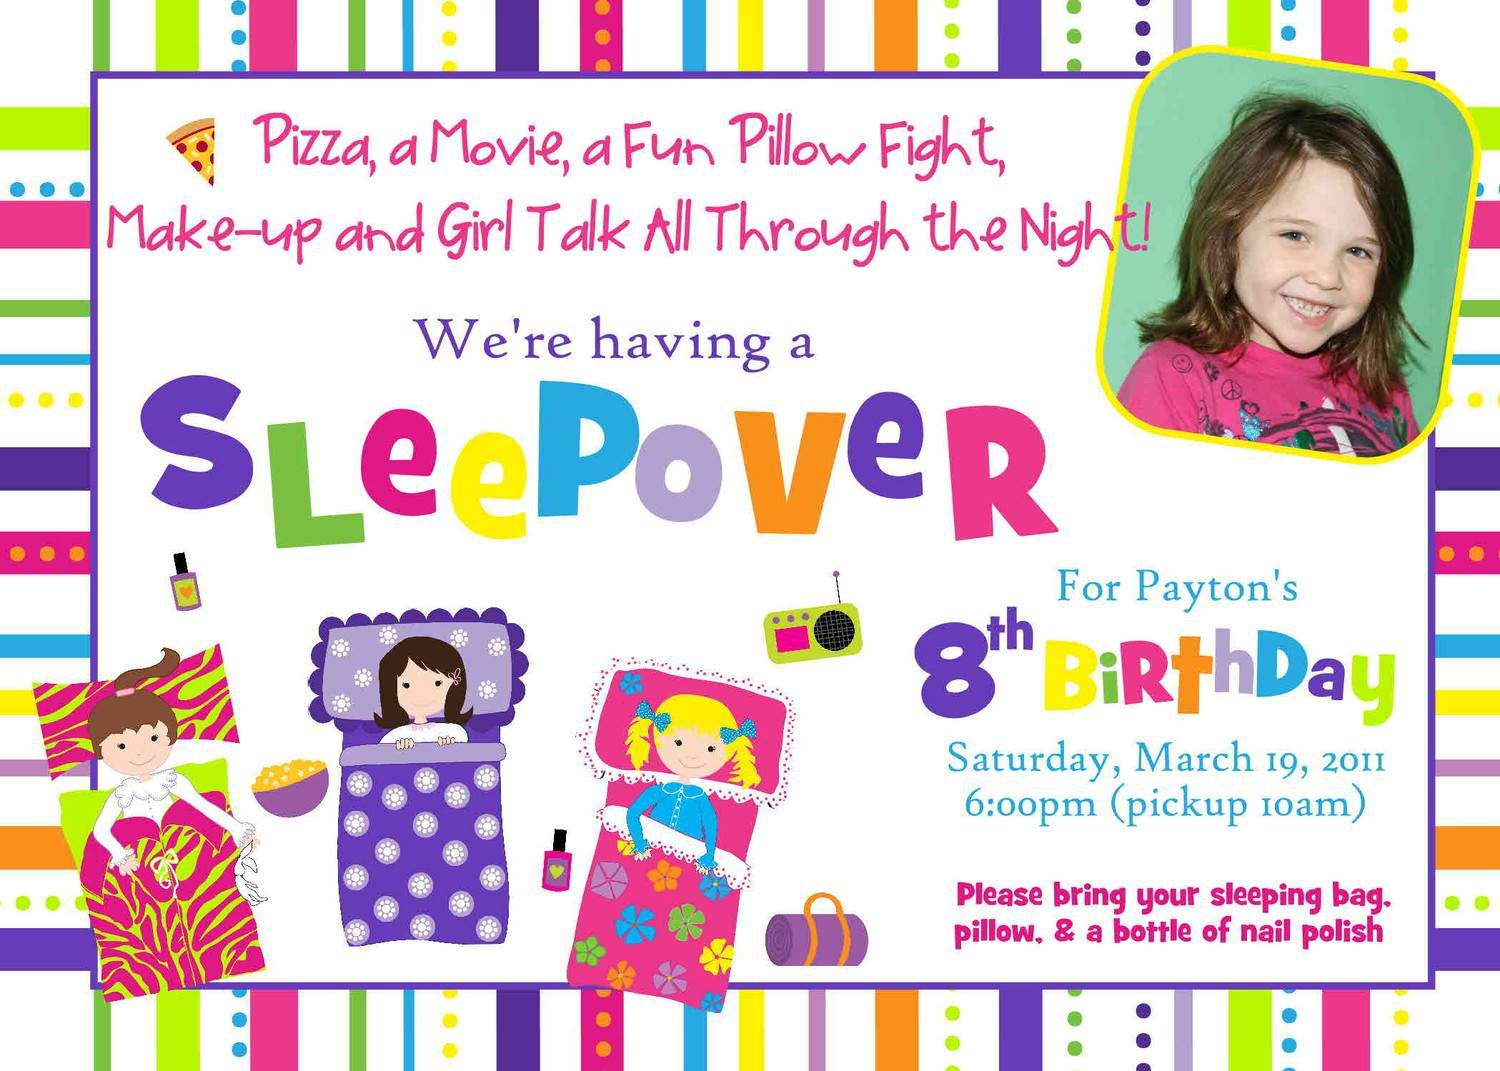 Girls Slumber Party Invitations Free Printable Slumber Party - Invitations for sleepover party templates